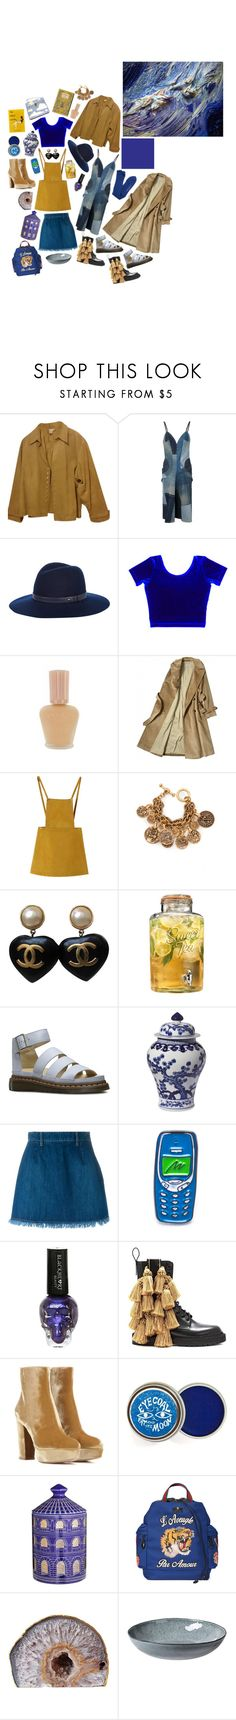 """sw 6971 Morning Glory"" by flapper-shoes ❤ liked on Polyvore featuring Coldwater Creek, rag & bone, Paul & Joe, Chicnova Fashion, Oscar de la Renta, Chanel, Home Essentials, Dr. Martens, Williams-Sonoma and Each X Other"